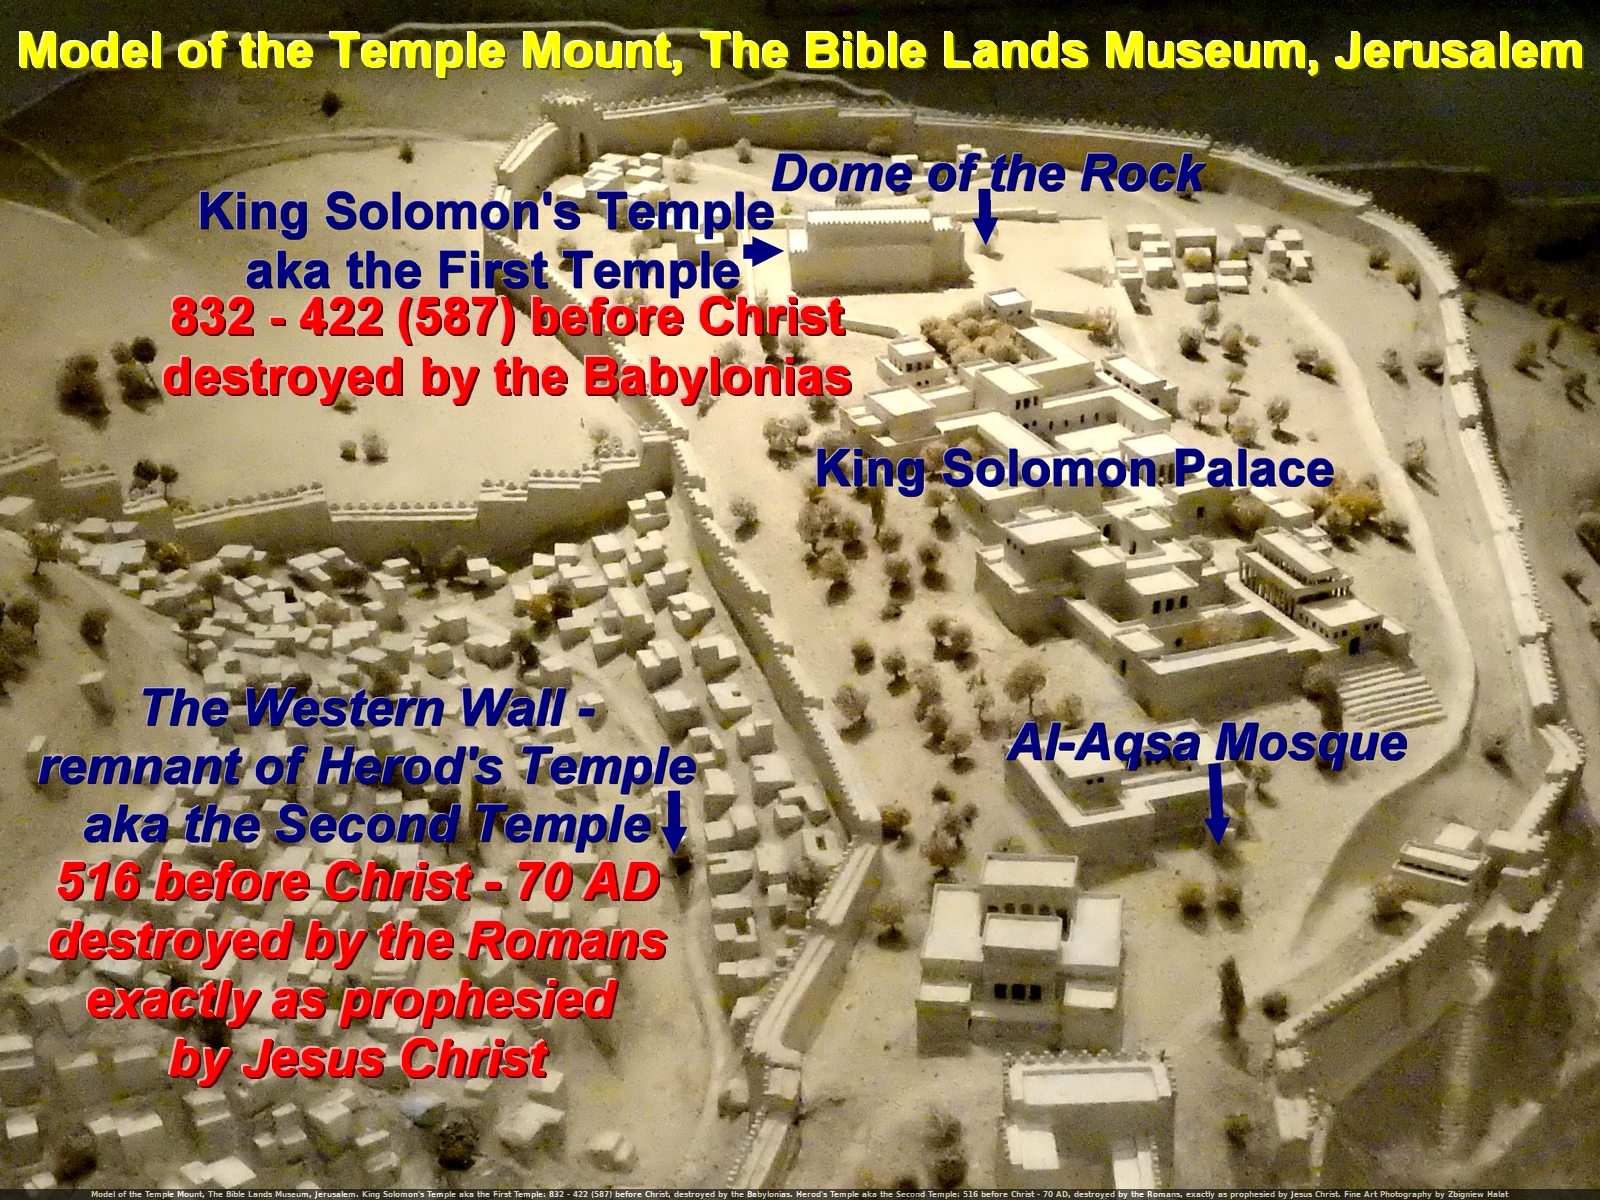 Model of the Temple Mount, The Bible Lands Museum, Jerusalem. King Solomon's Temple aka the First Temple: 832 - 422 (587) before Christ, destroyed by the Babylonias. Herod's Temple aka the Second Temple: 516 before Christ - 70 AD, destroyed by the Romans, exactly as prophesied by Jesus Christ.Fine Art Photography by Zbigniew Halat